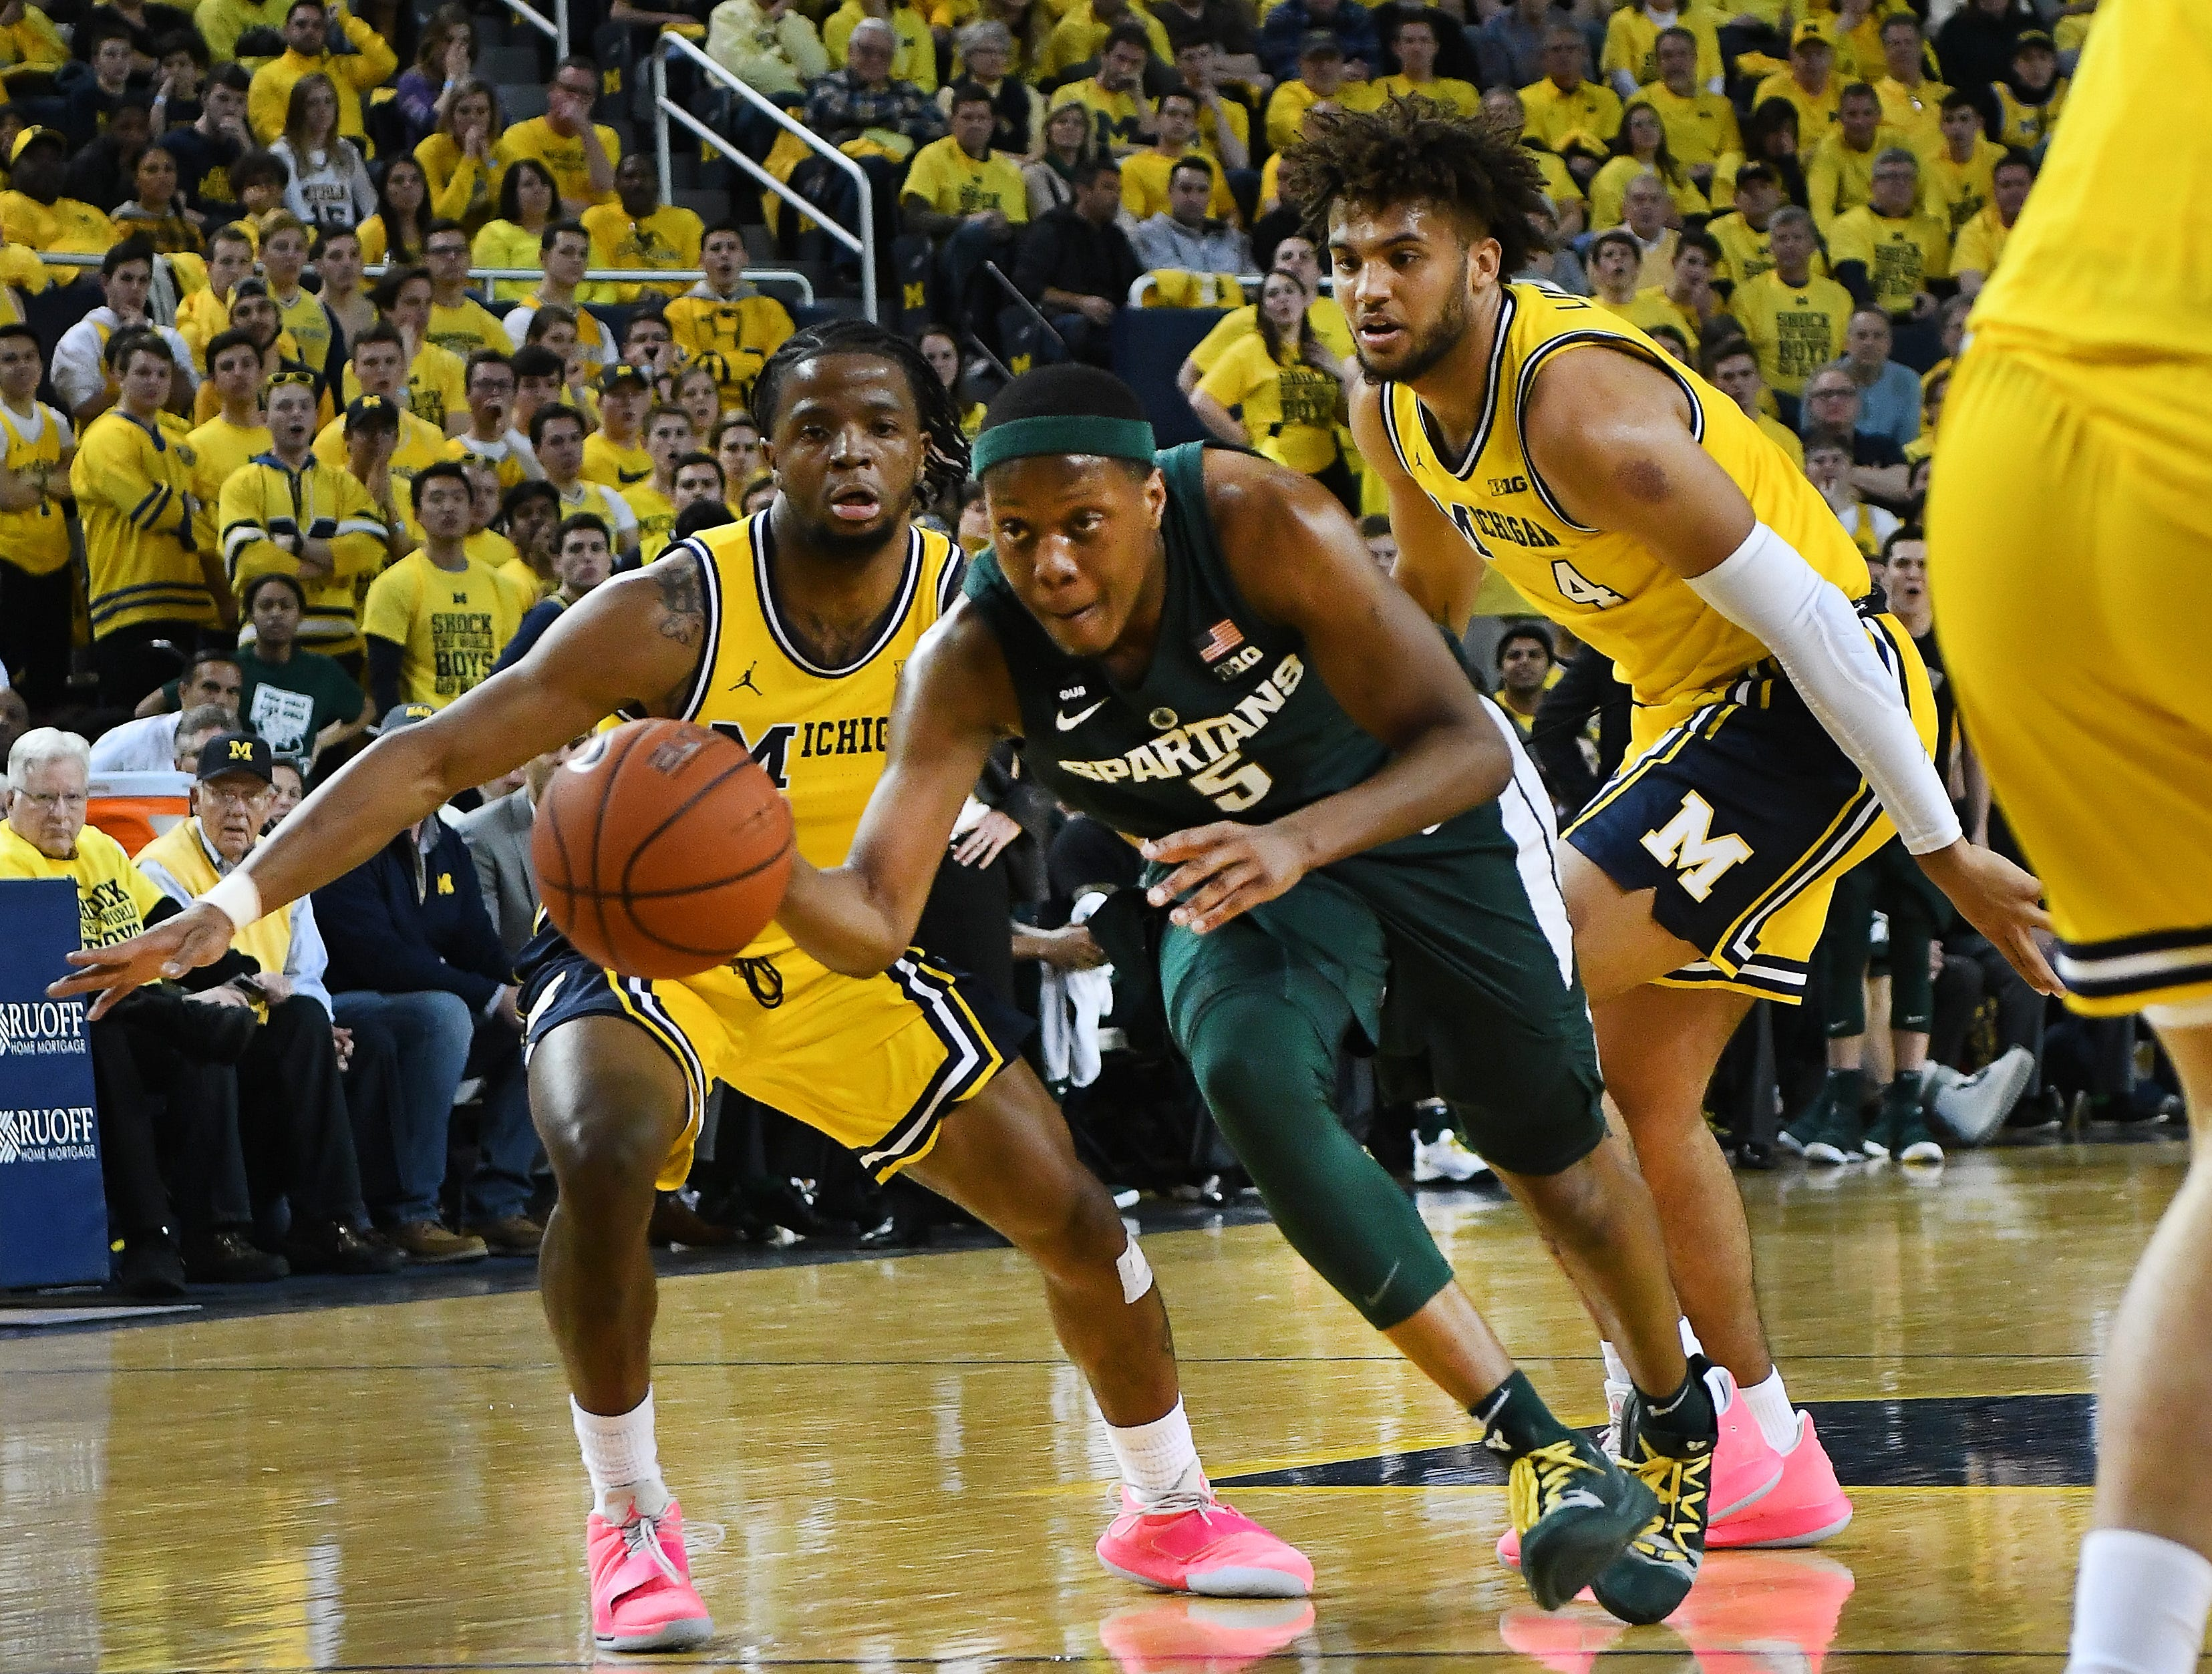 Michigan State's Cassius Winston splits Michigan defenders Zavier Simpson, left, and Isaiah Livers while driving to the basket in the first half at Crisler Center in Ann Arbor, Michigan on February 24, 2019.